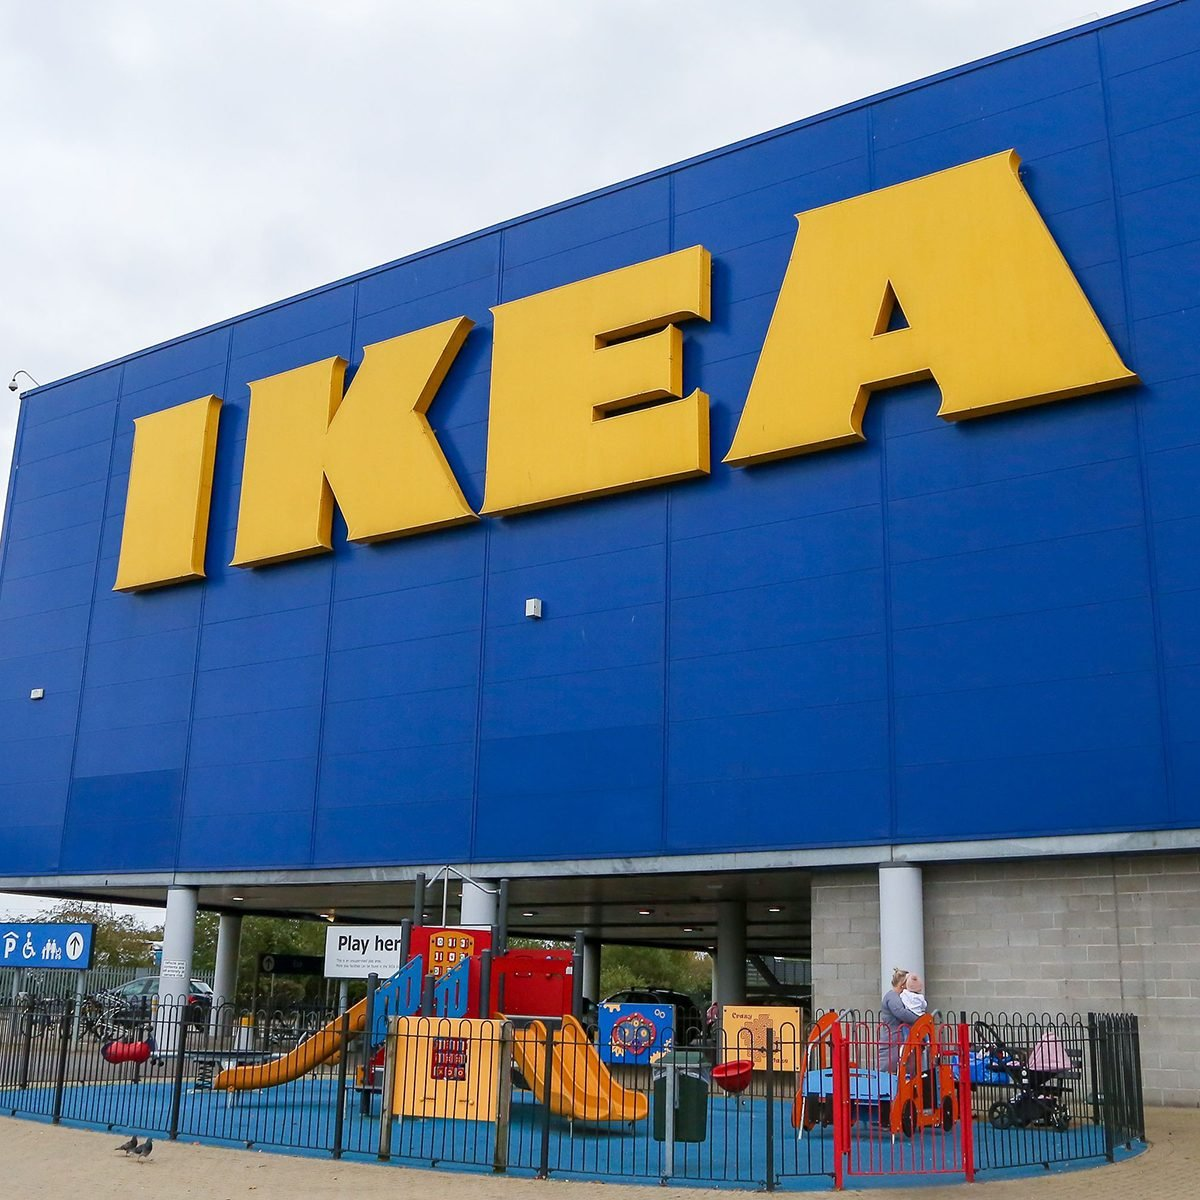 General view of Ikea store in Edmonton, North London